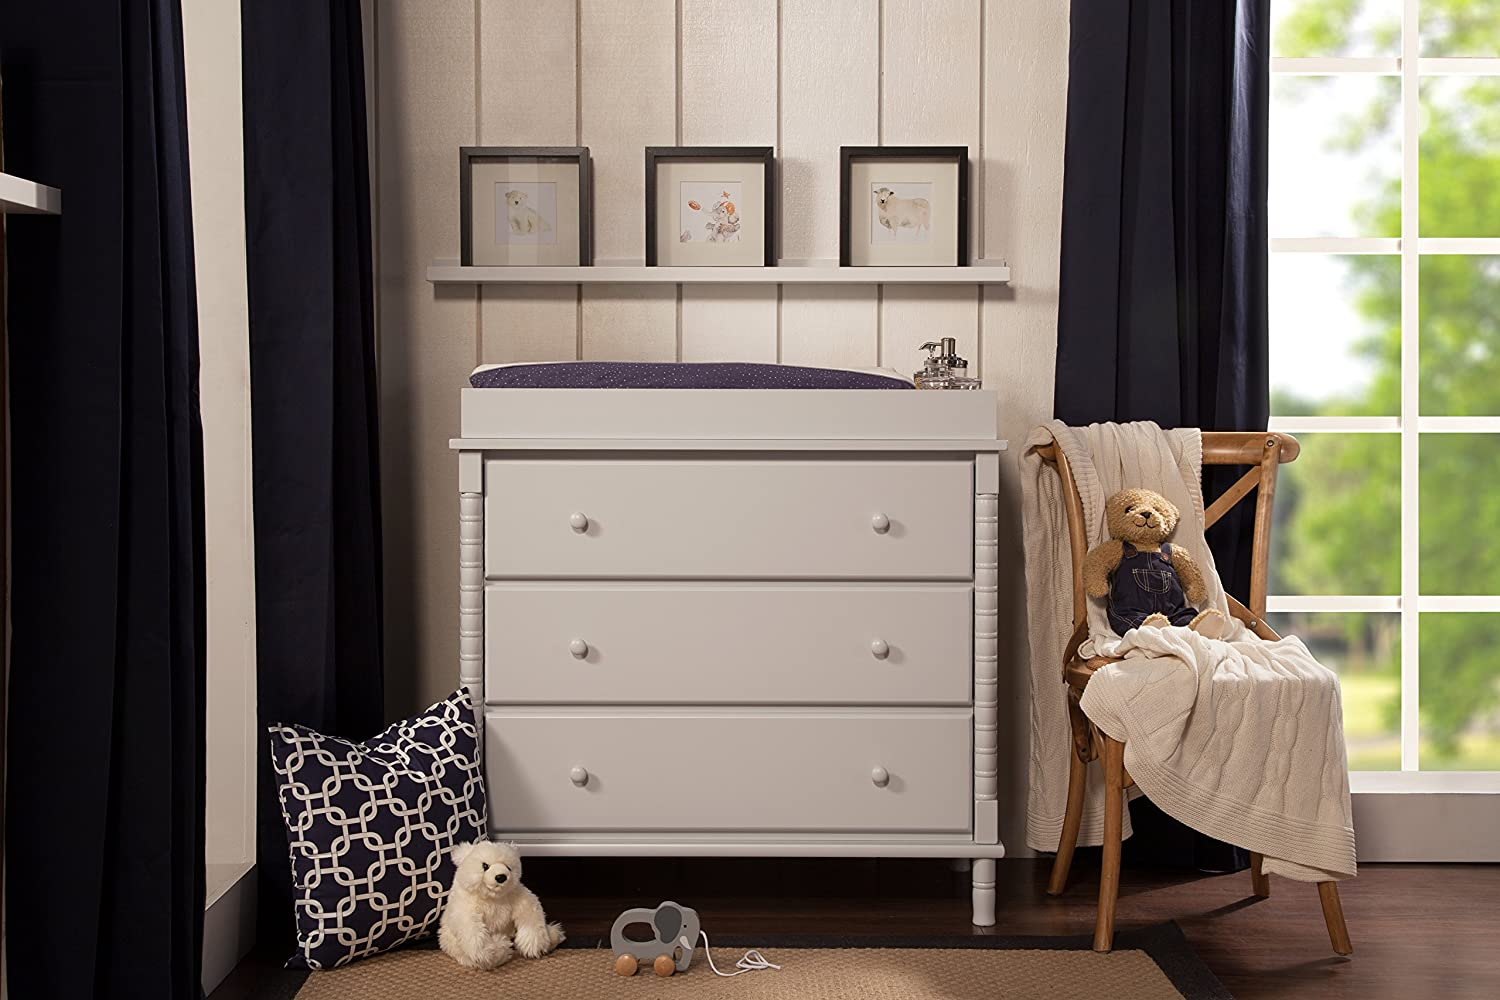 Amazon.com : DaVinci Jenny Lind 3 Drawer Changer Dresser, Fog Grey For  Babies R Us : Baby